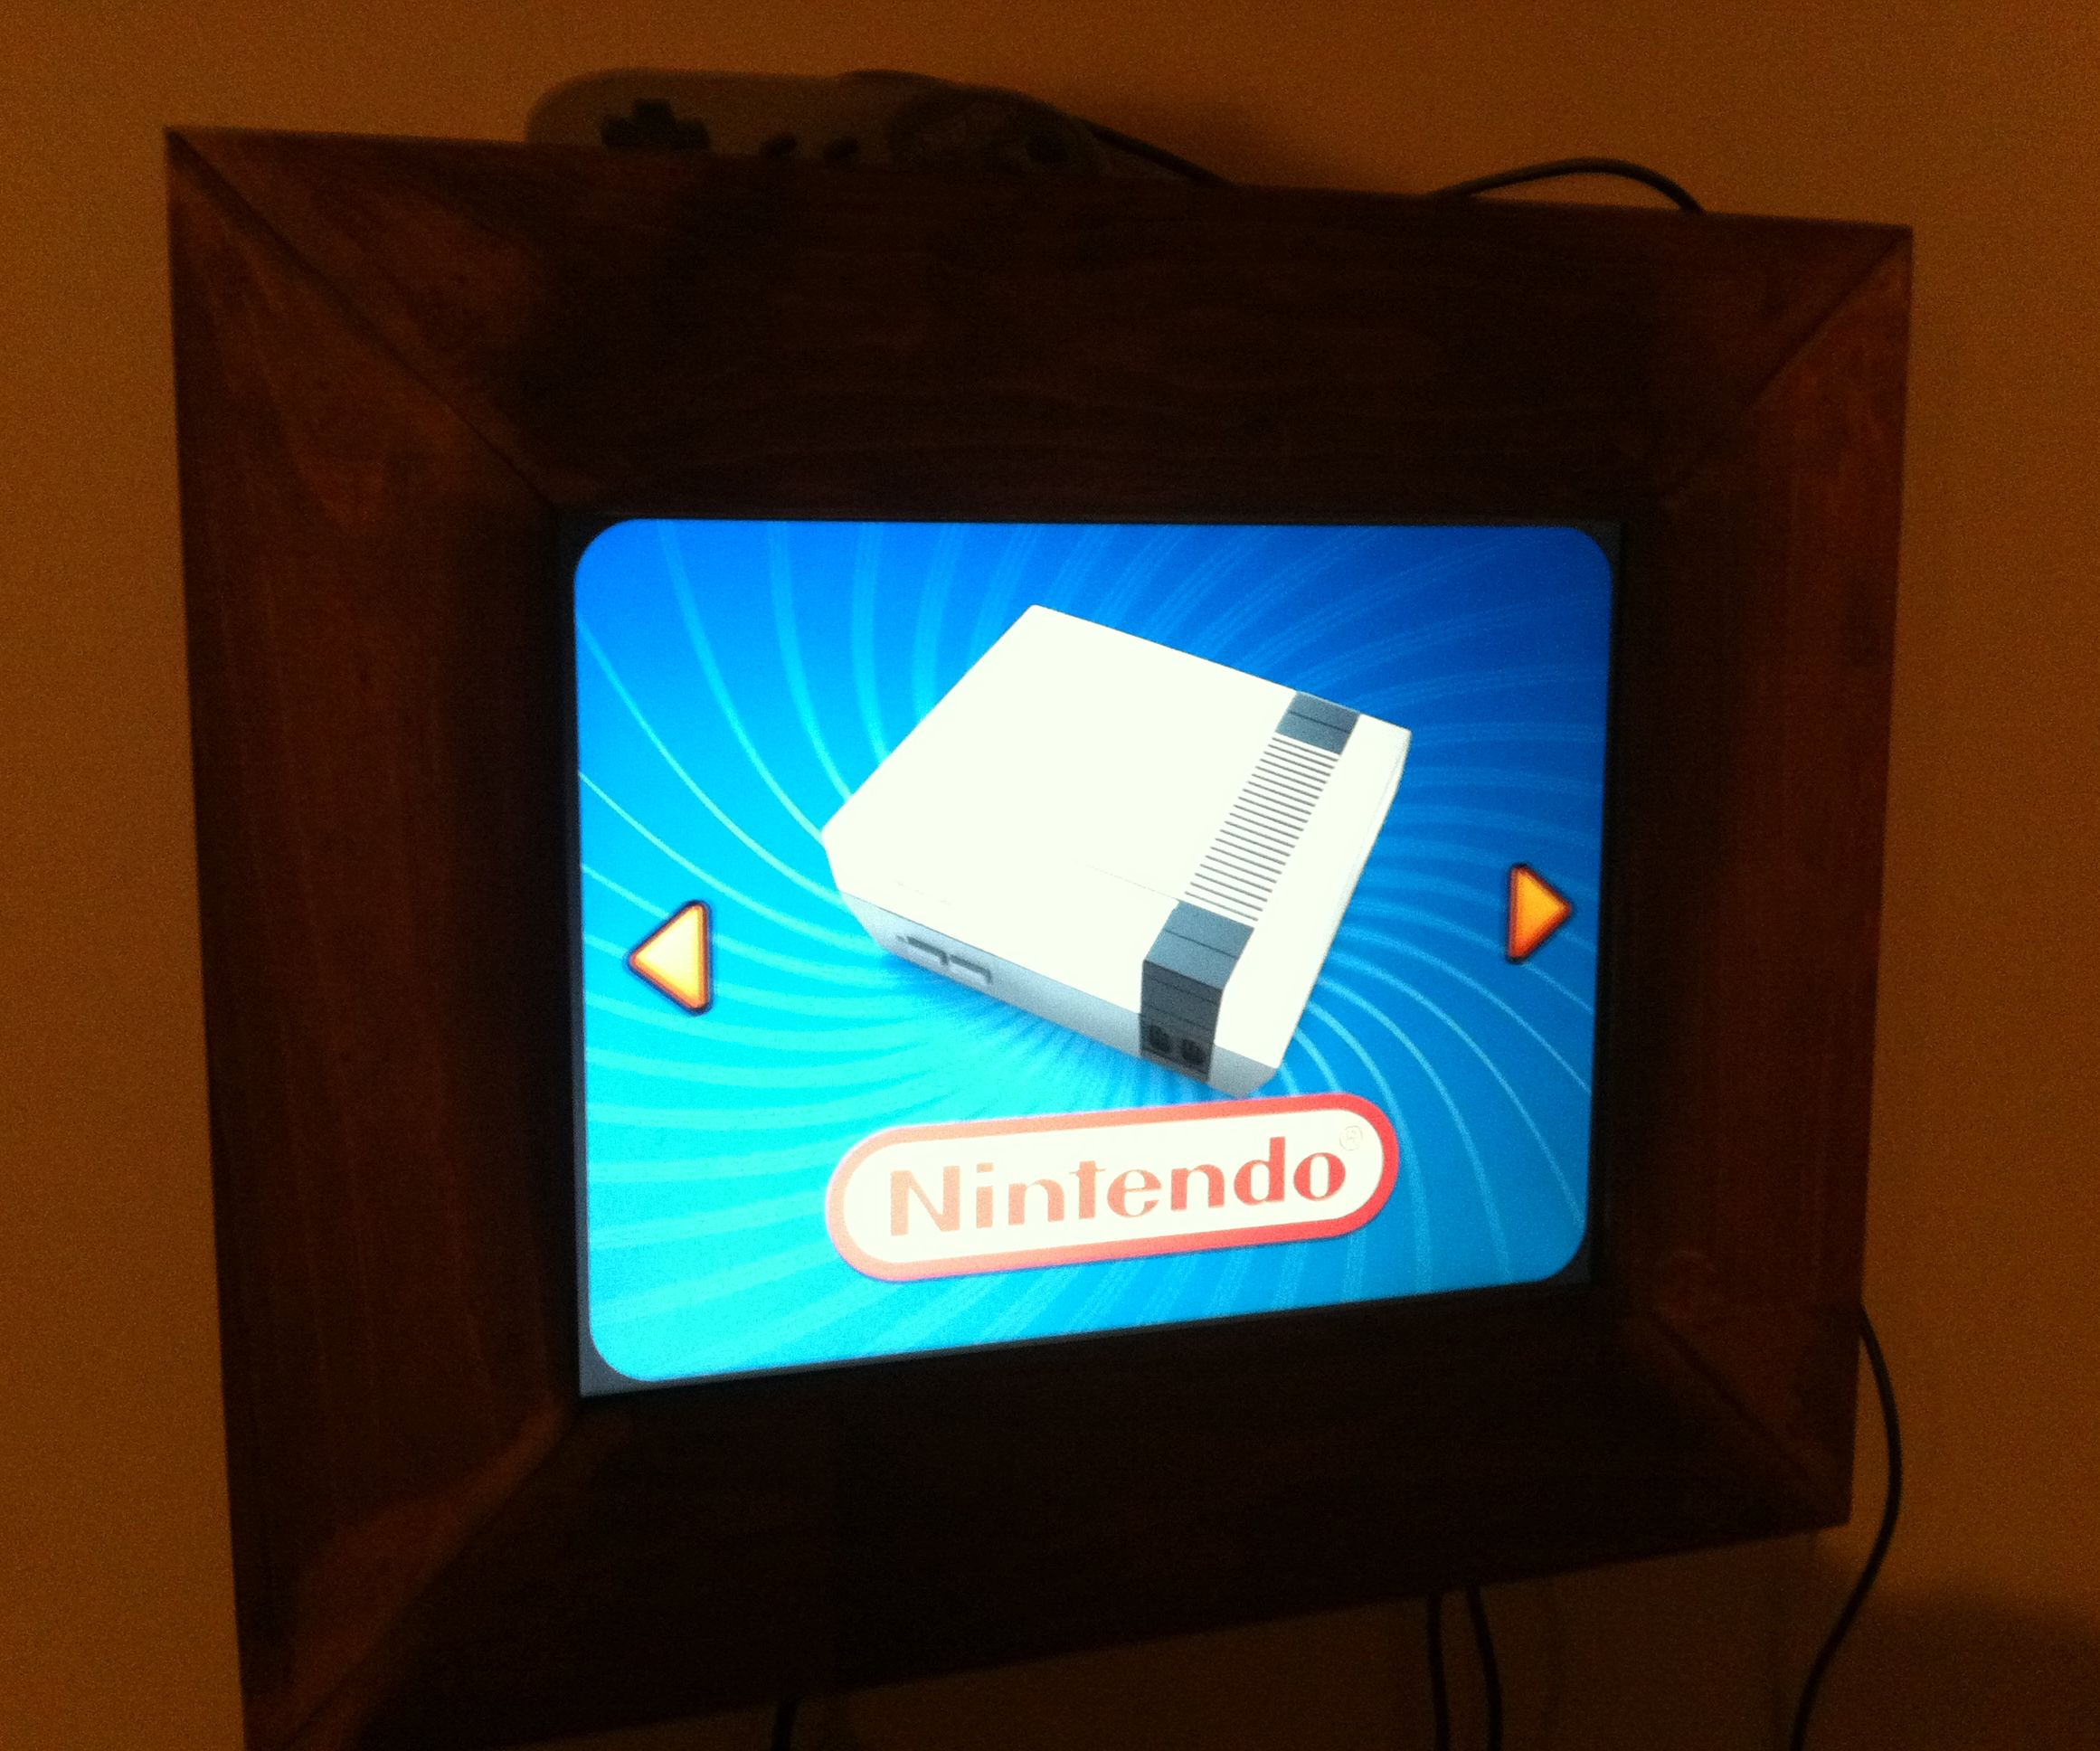 50$ Wall Mounted Arcade Cabinet: 4 Steps